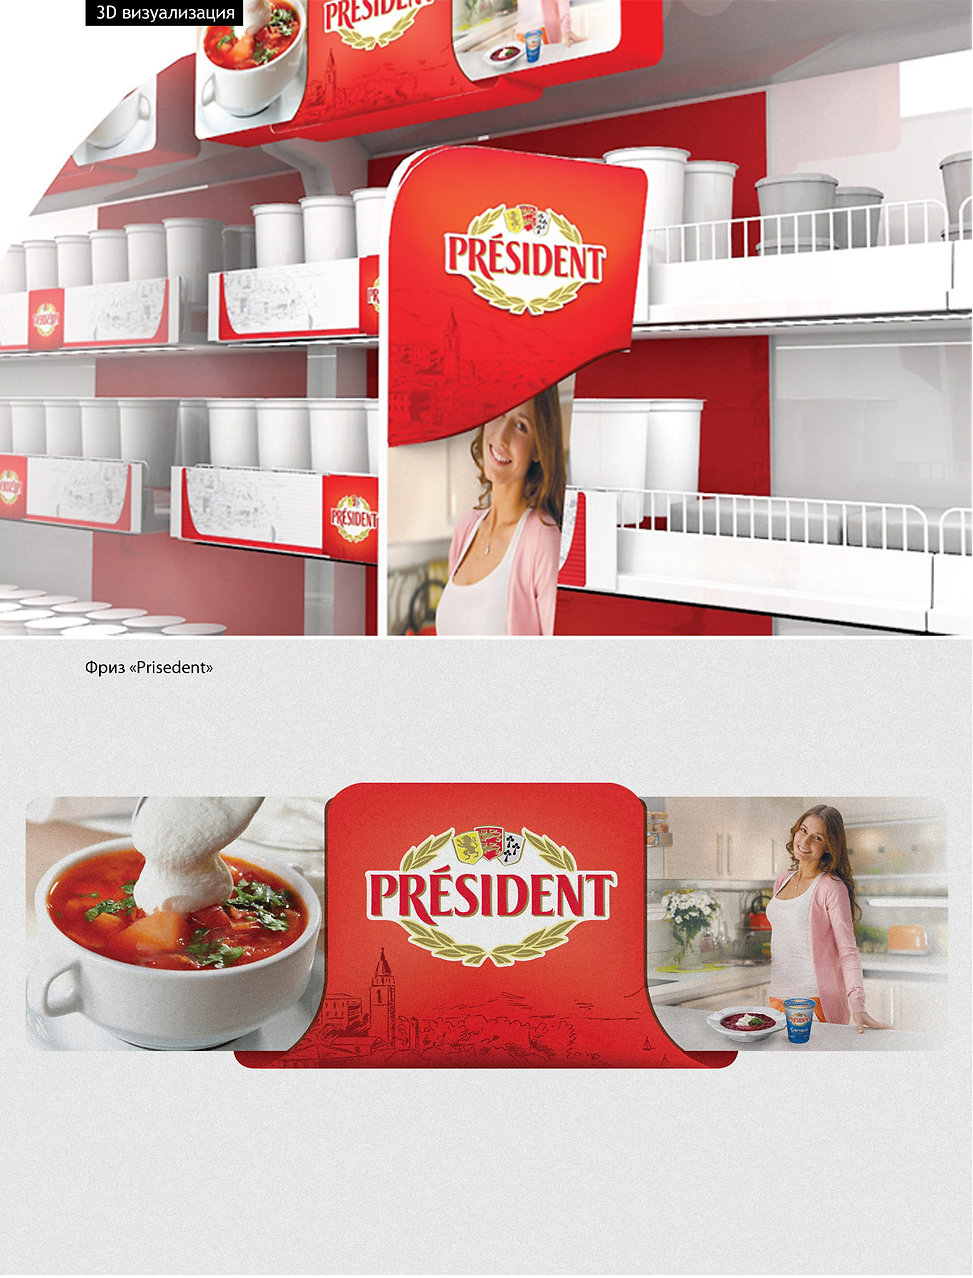 president pos materials